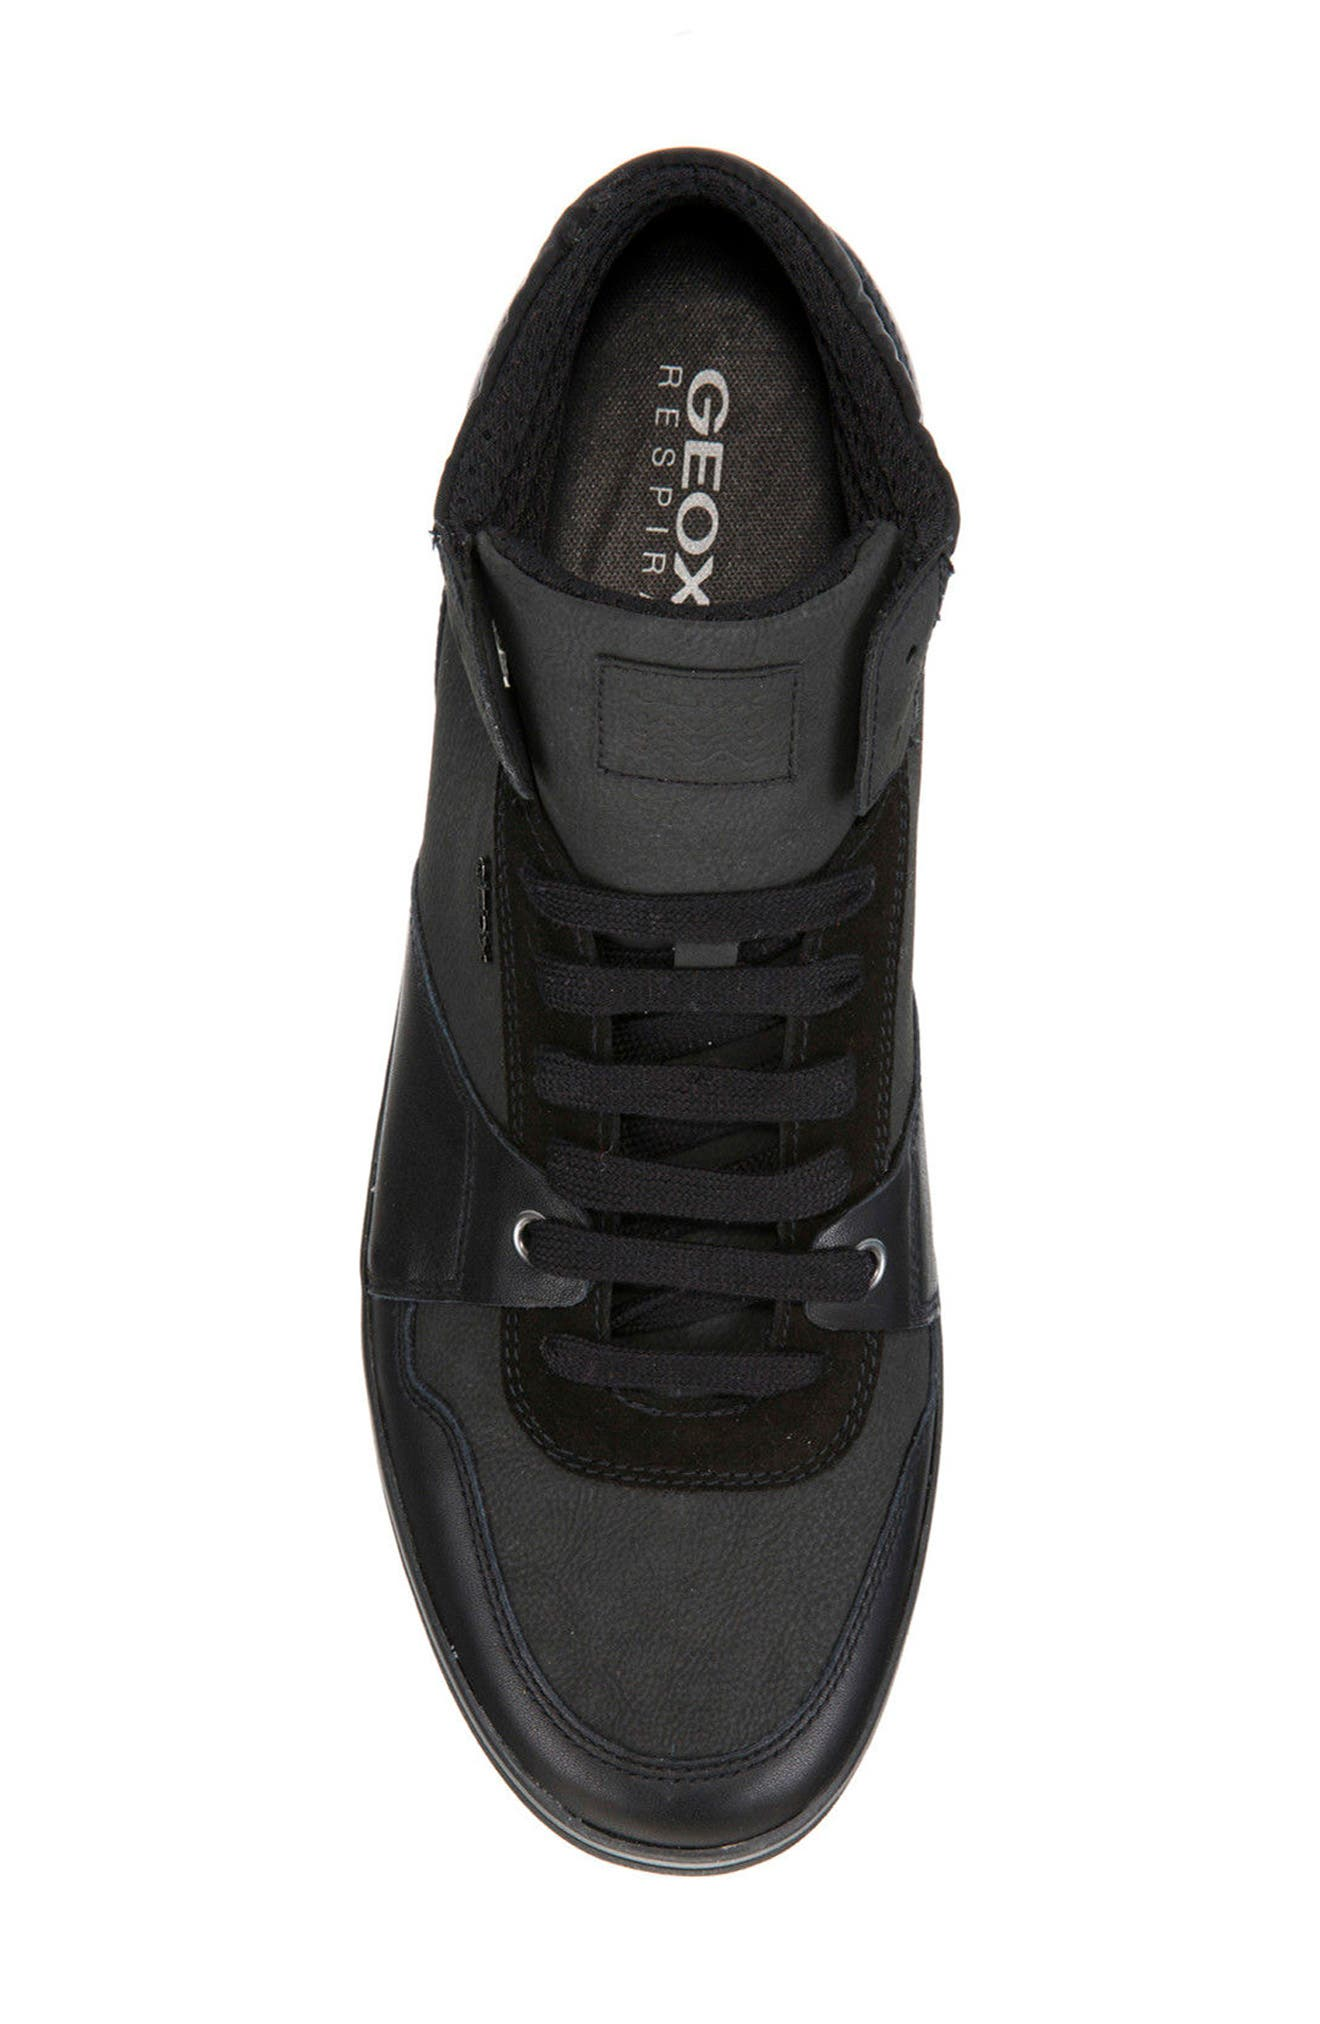 Box 31 High Top Sneaker,                             Alternate thumbnail 5, color,